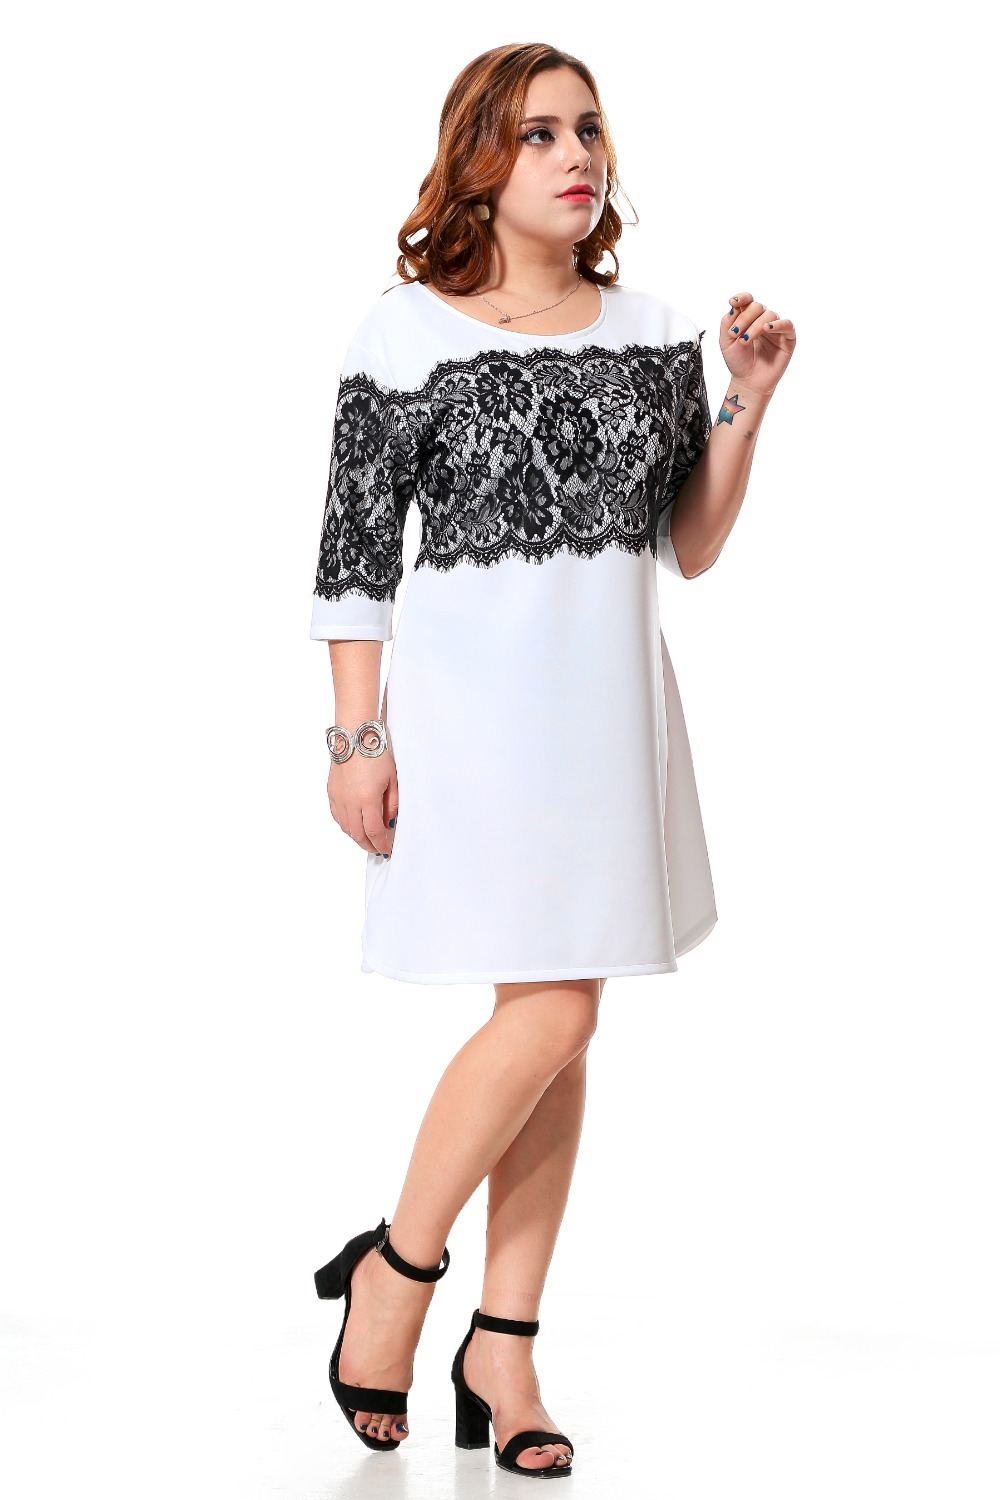 Plus size white casual dress with black lace patchwork womens half sleeve  party dress split design by side 3xl 7xl spring 13-in Underwear from Mother    Kids ... fcbf003cc947